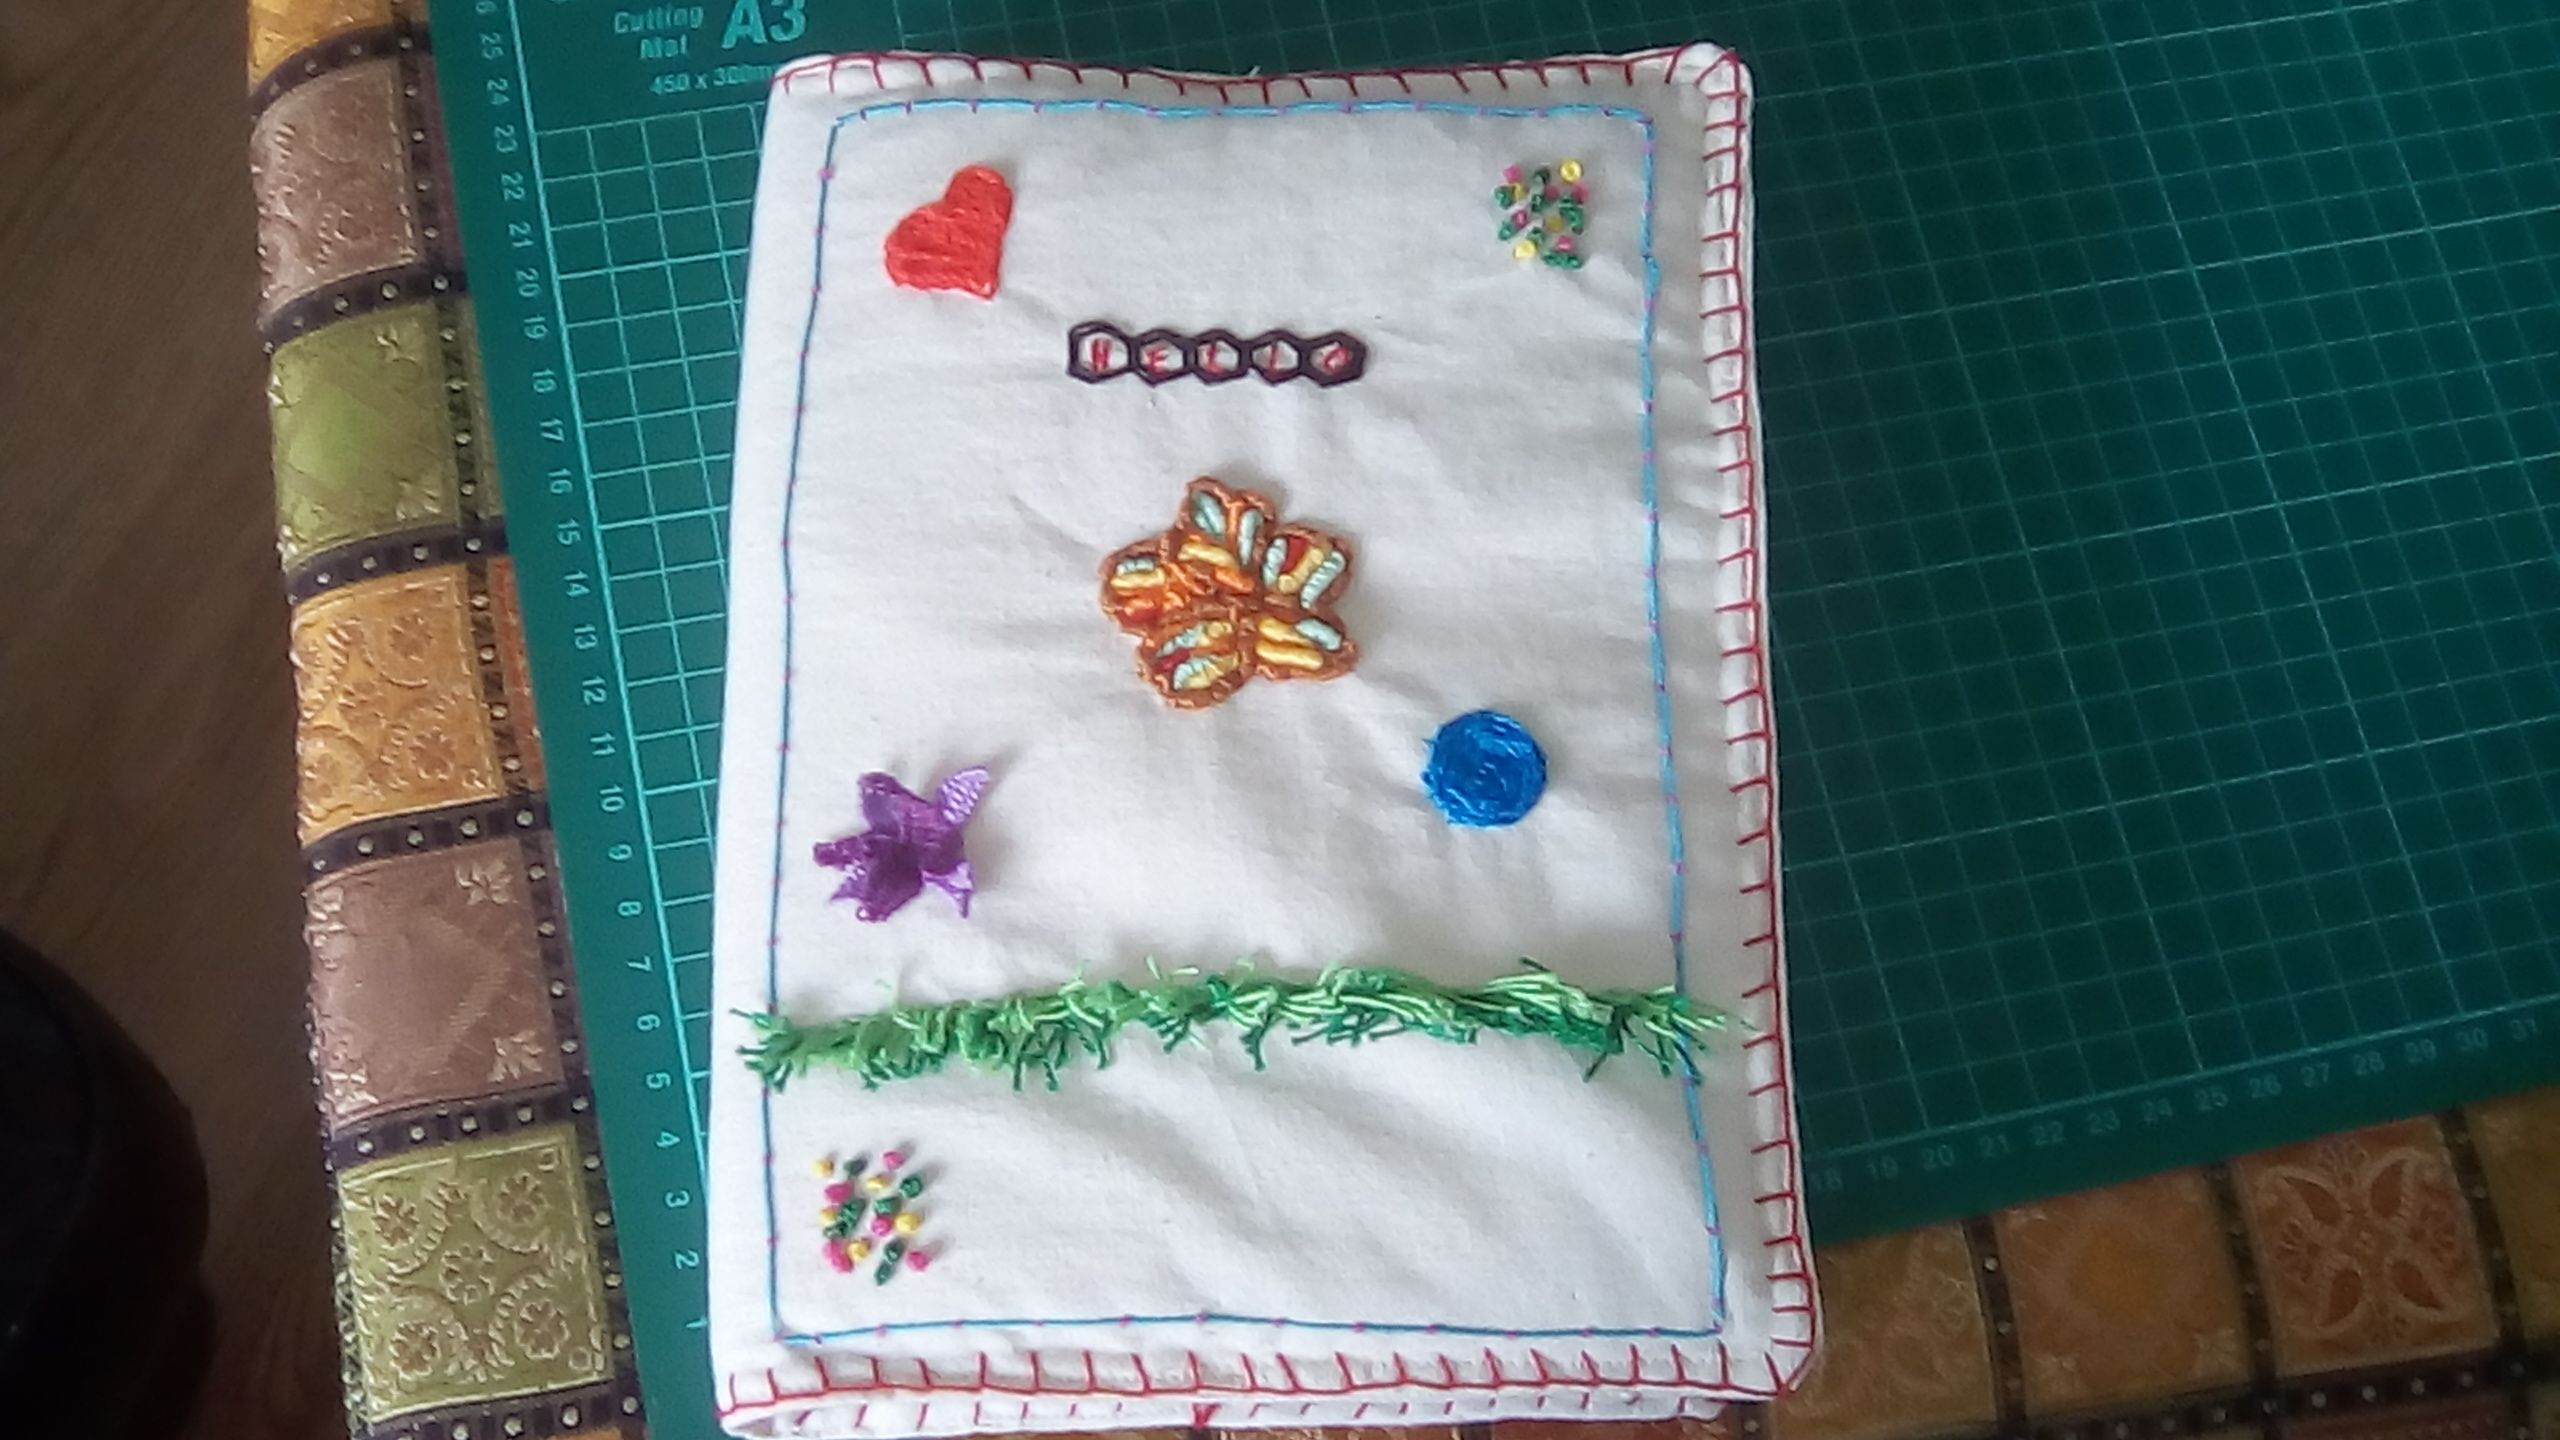 Bookcover with techniques from raised embroiderysearchpress ts